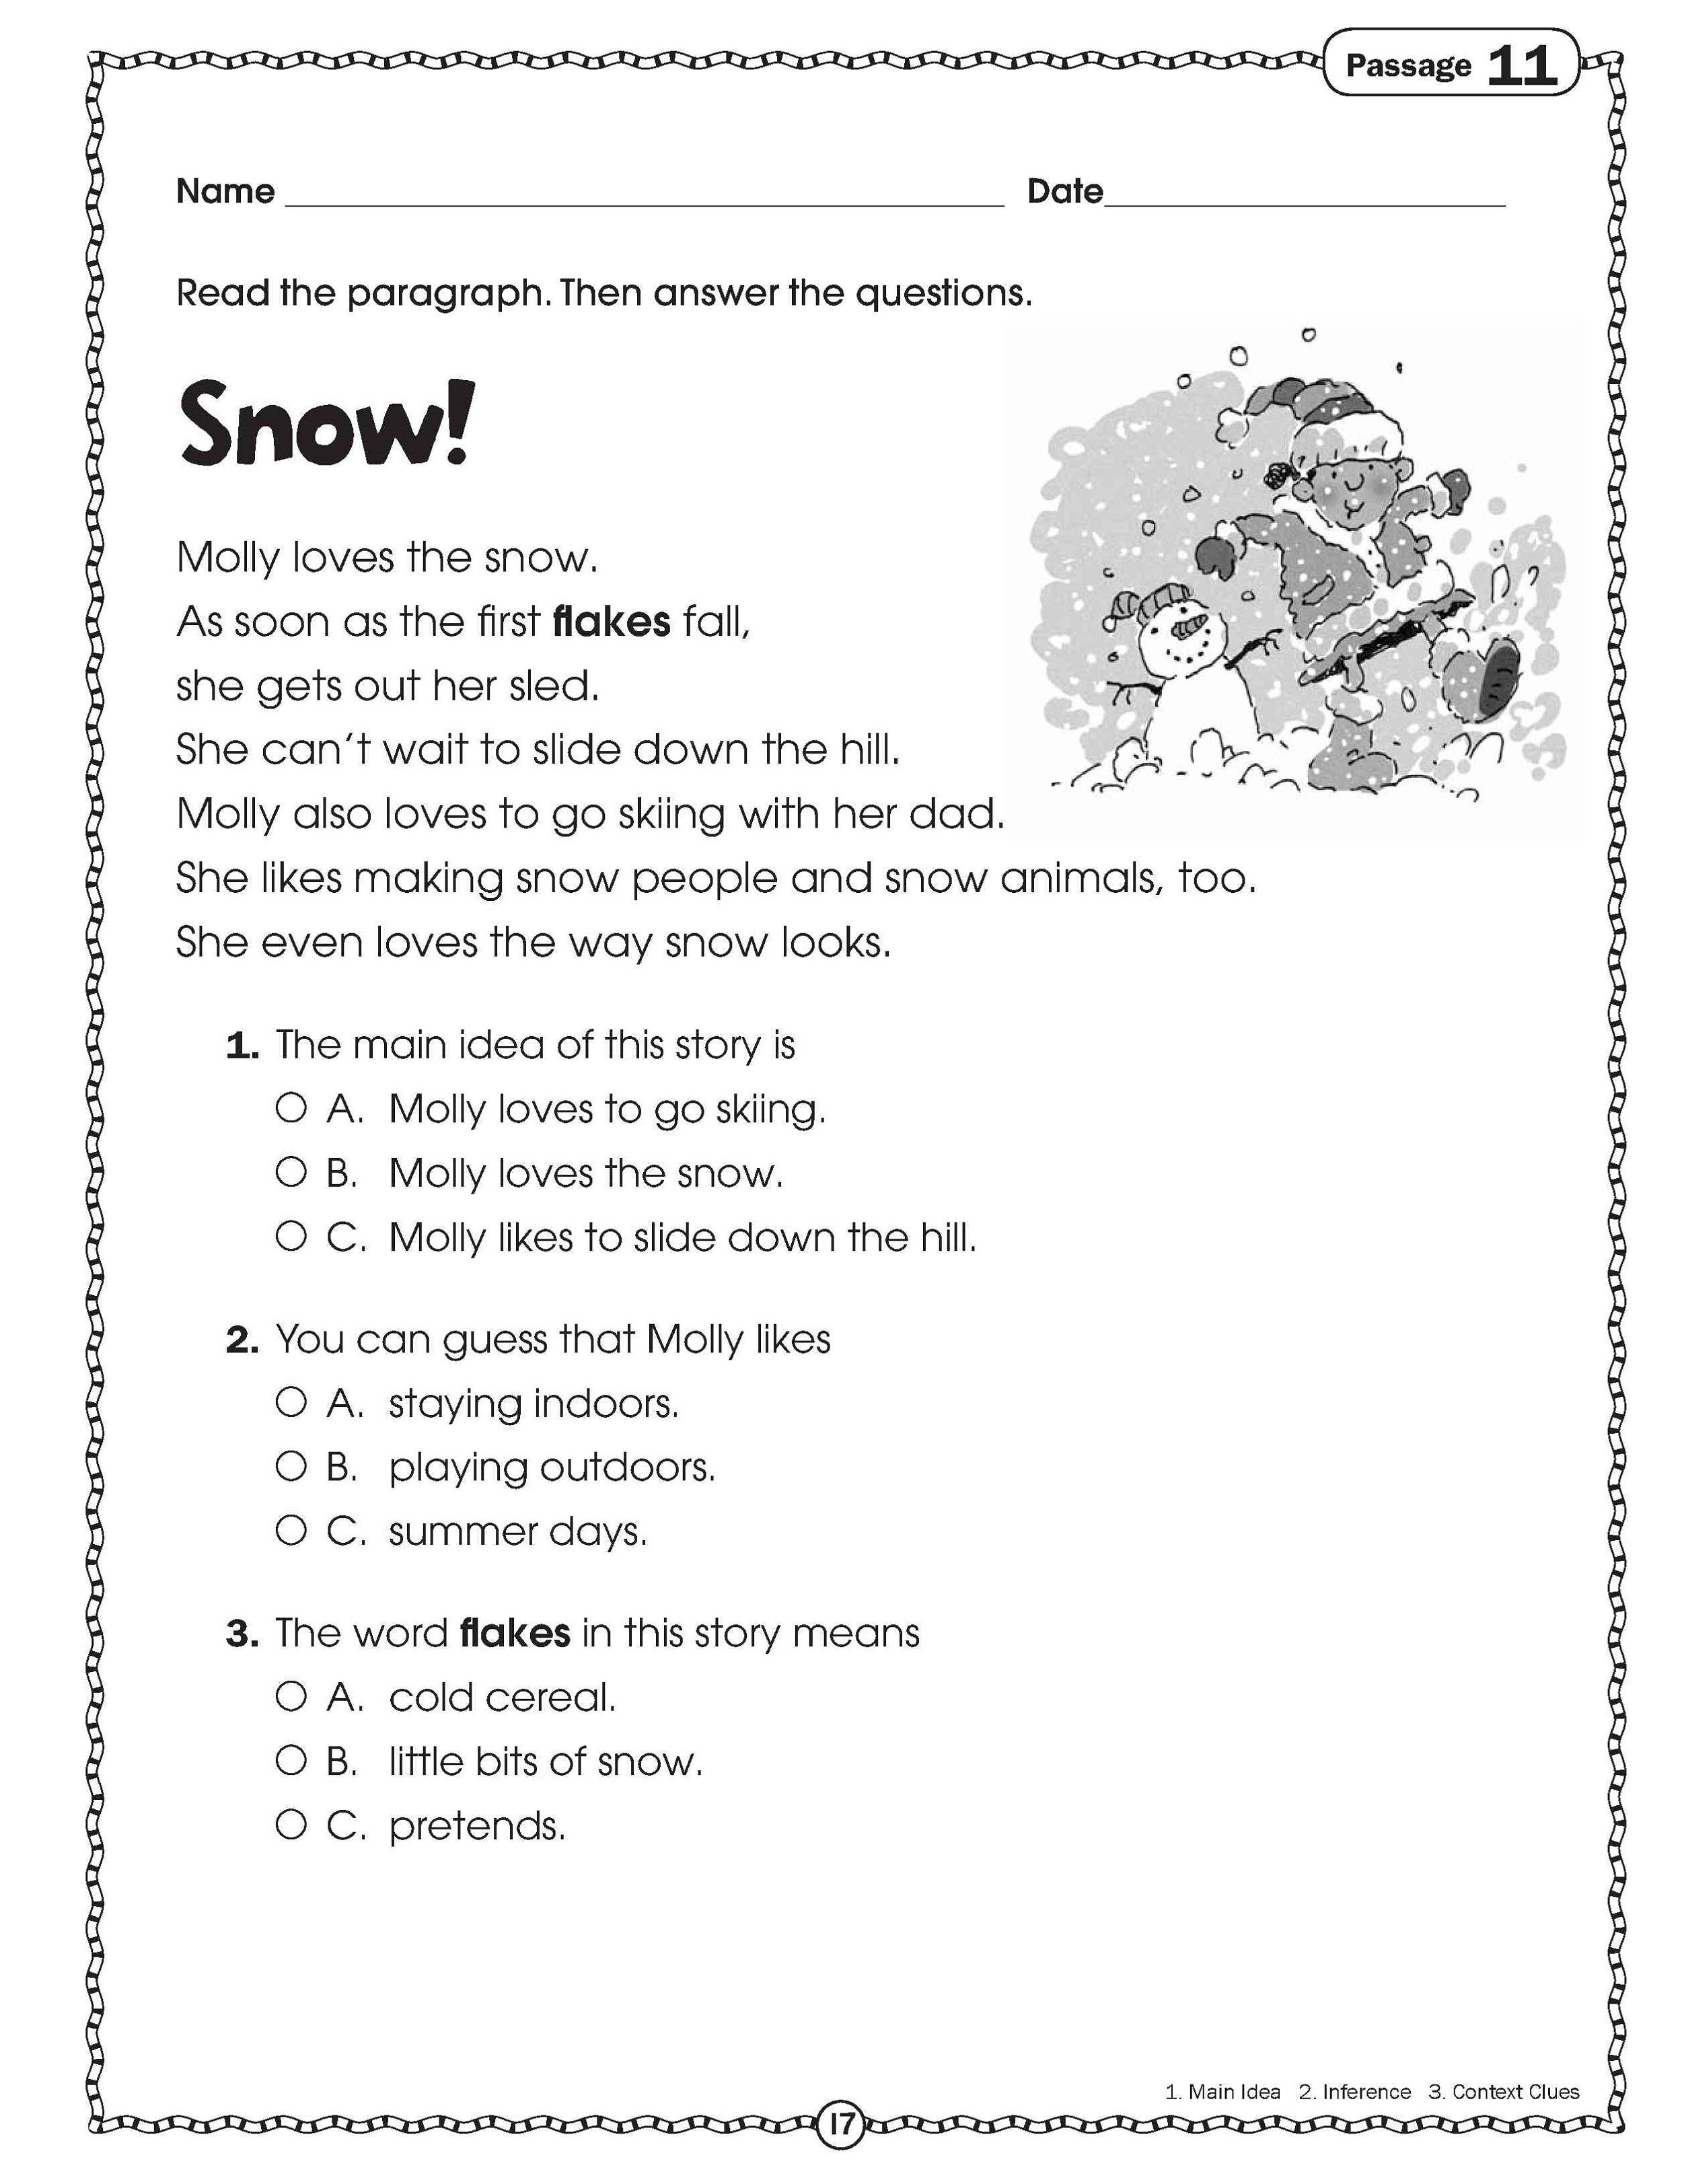 Free Handouts Reading | Learning Printable | Kids Worksheets ...